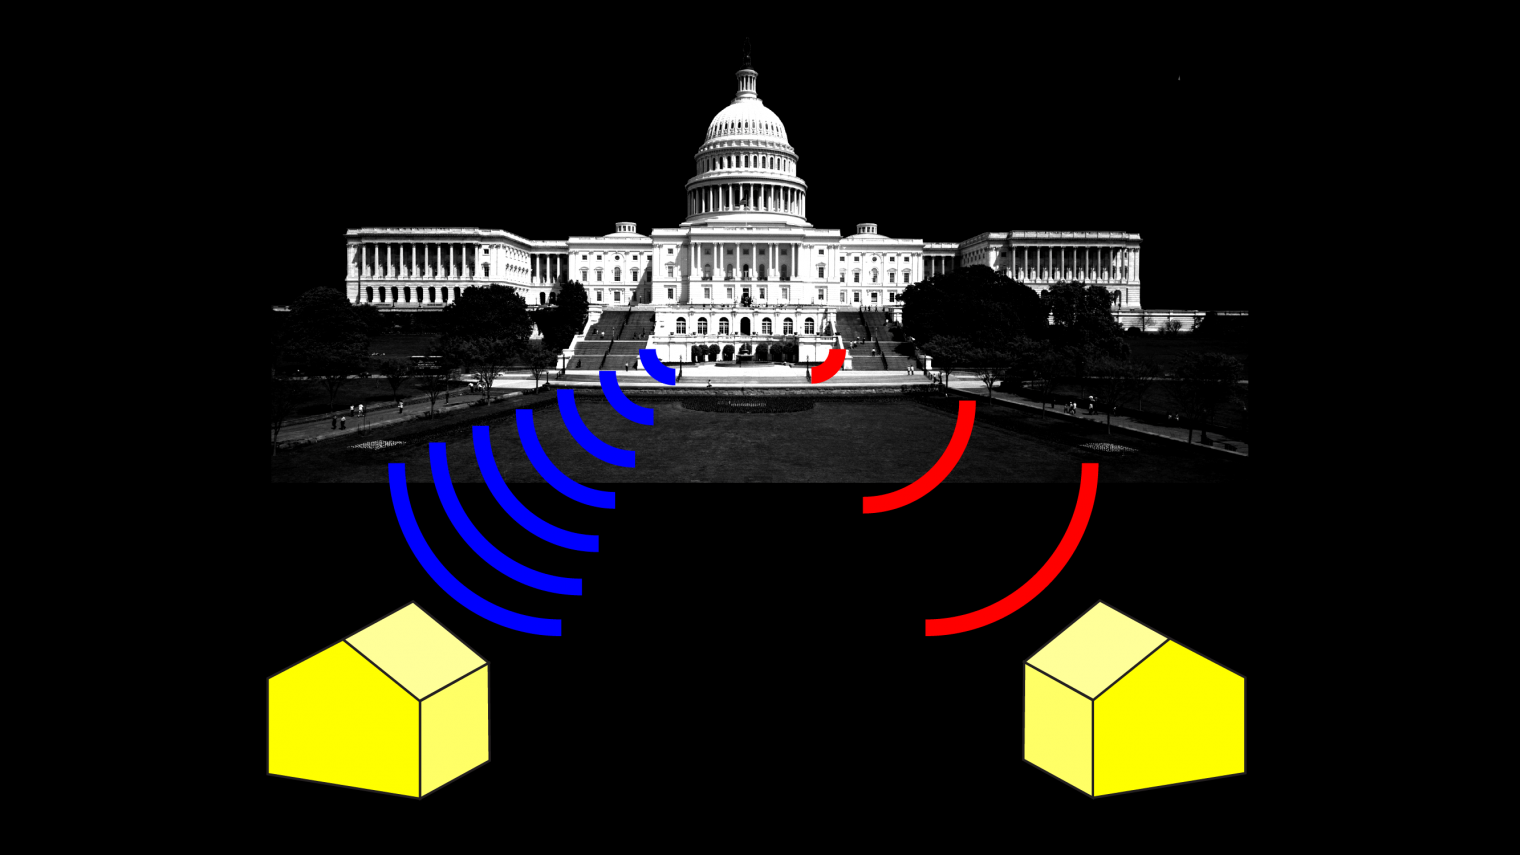 """Illustration for MIT Technology Review """"The FCC Is Hinting it Might Change its Rules to Hide America's Digital Divide"""